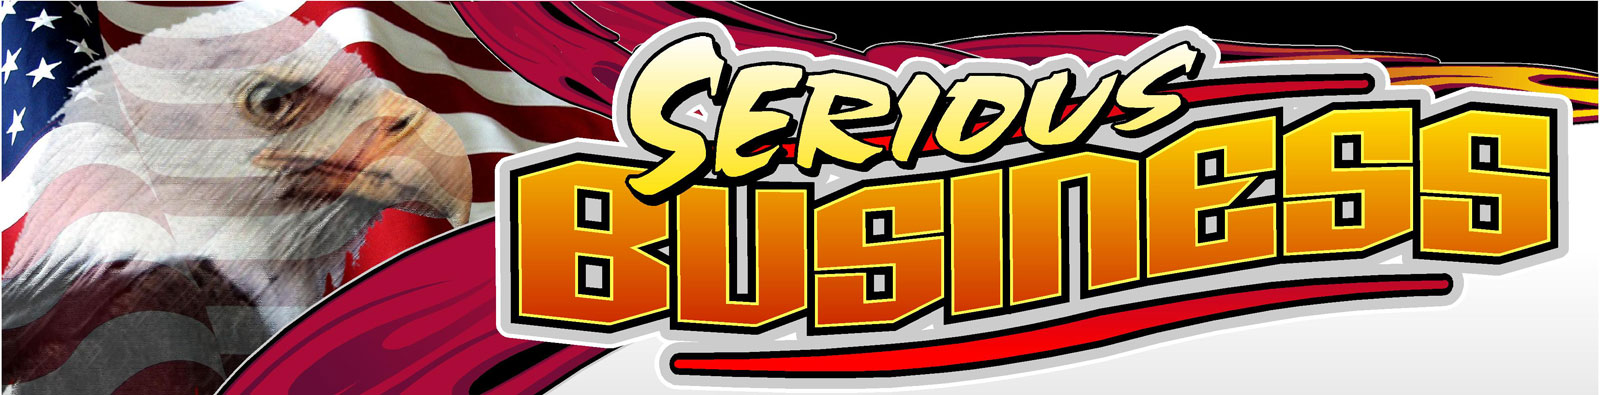 serious business logo